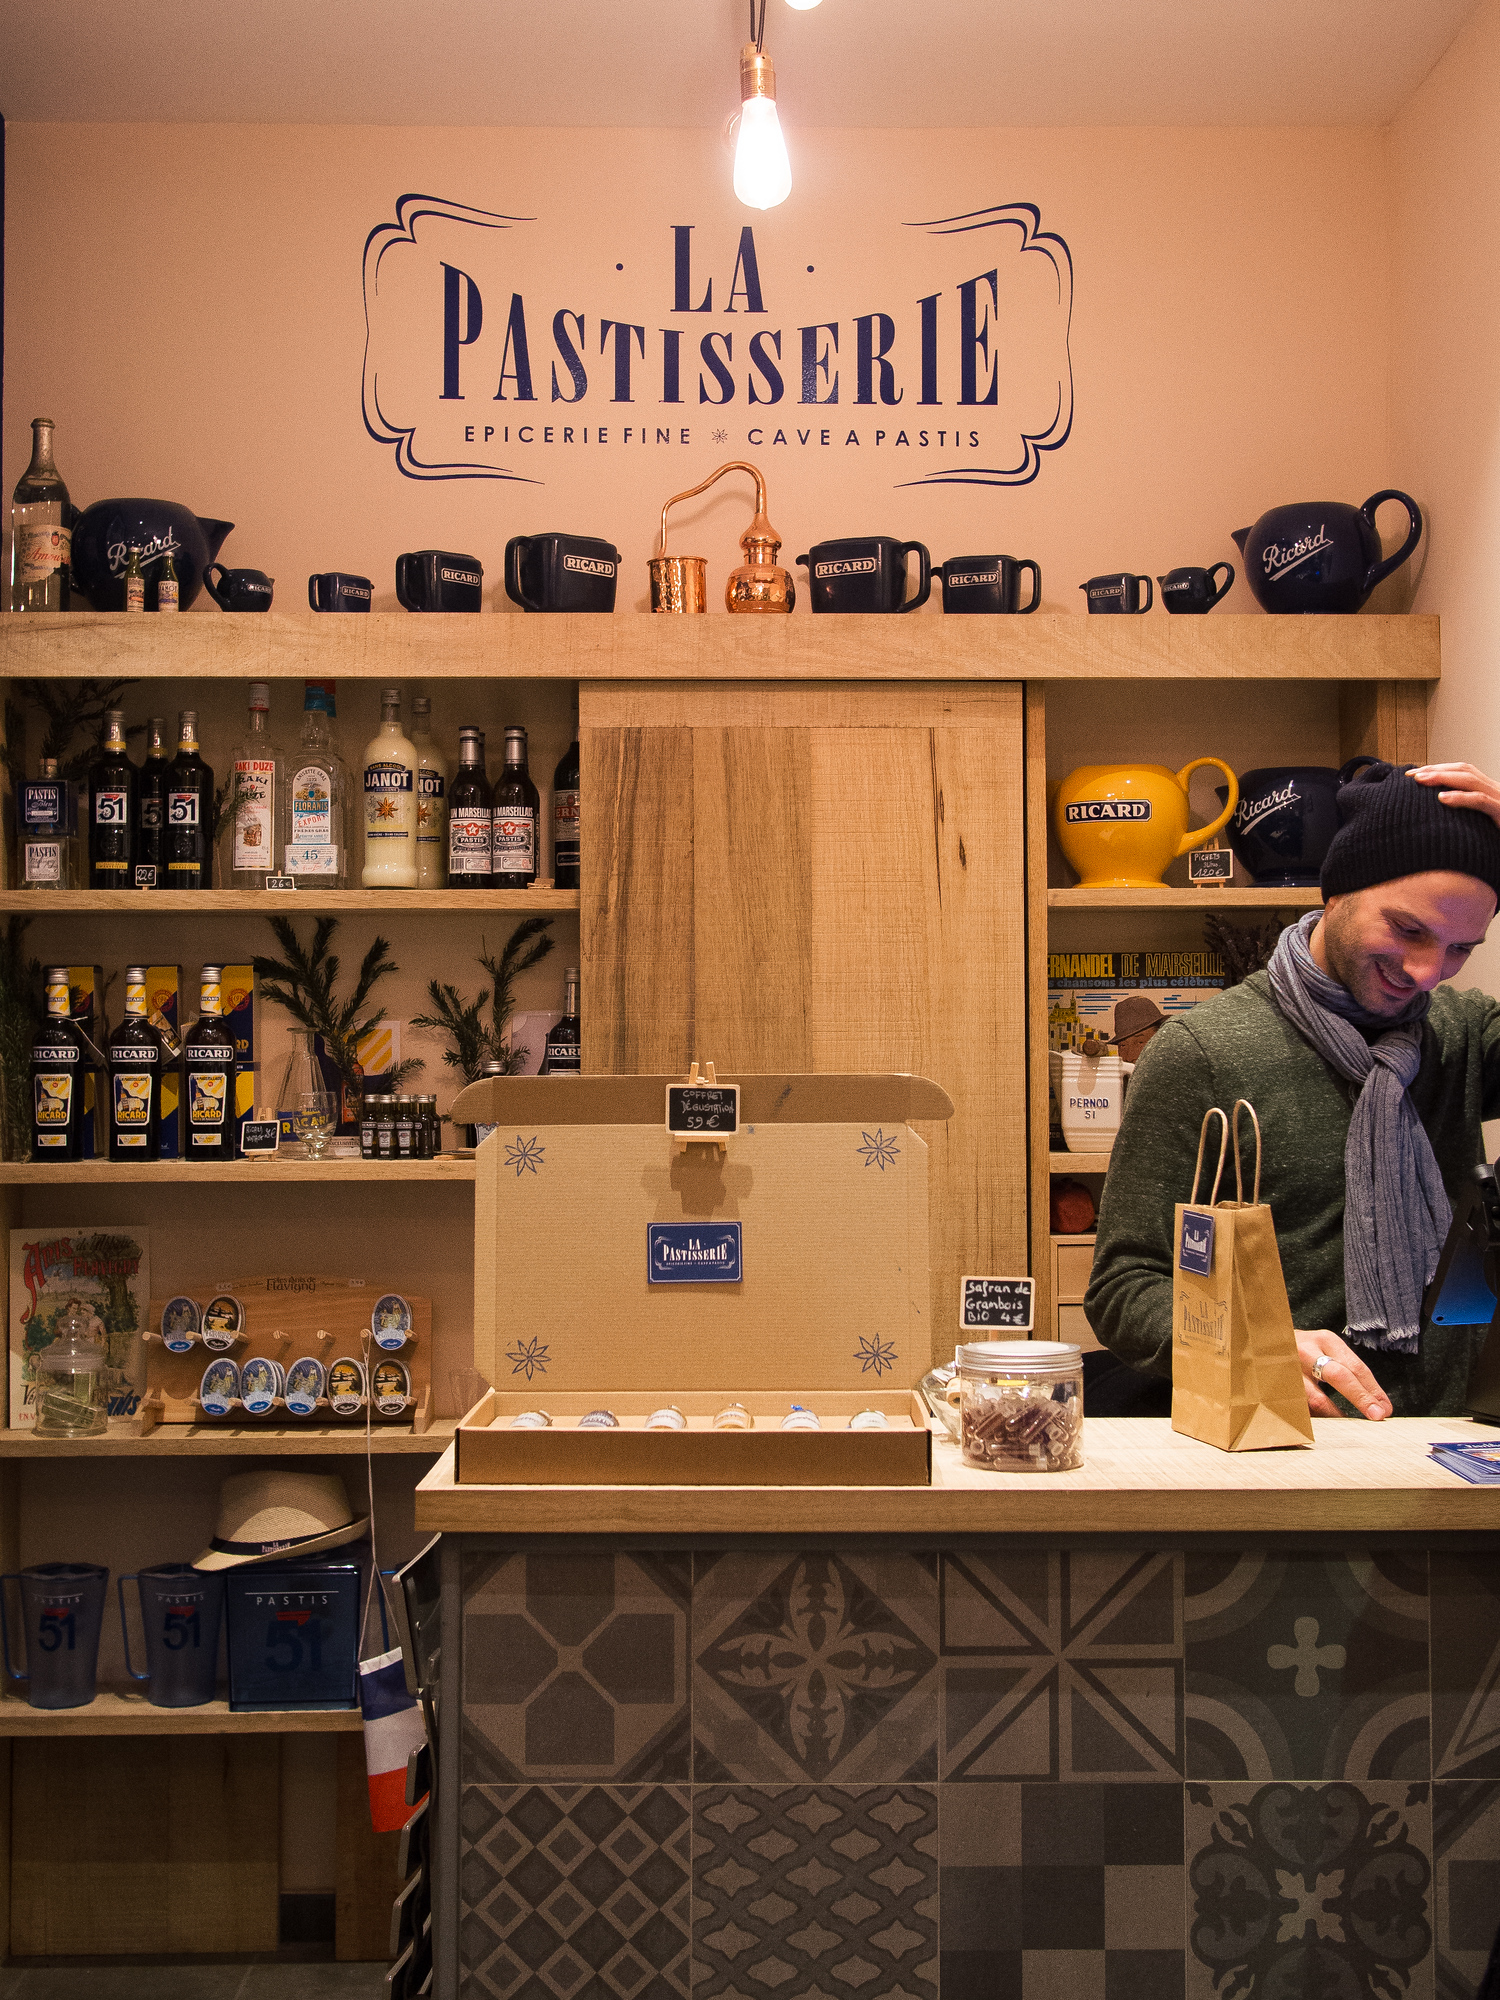 Local pastis is an apertif popular in provence. Check out our top locals' picks on where to eat in Aix en Provence and avoid the tourist traps.